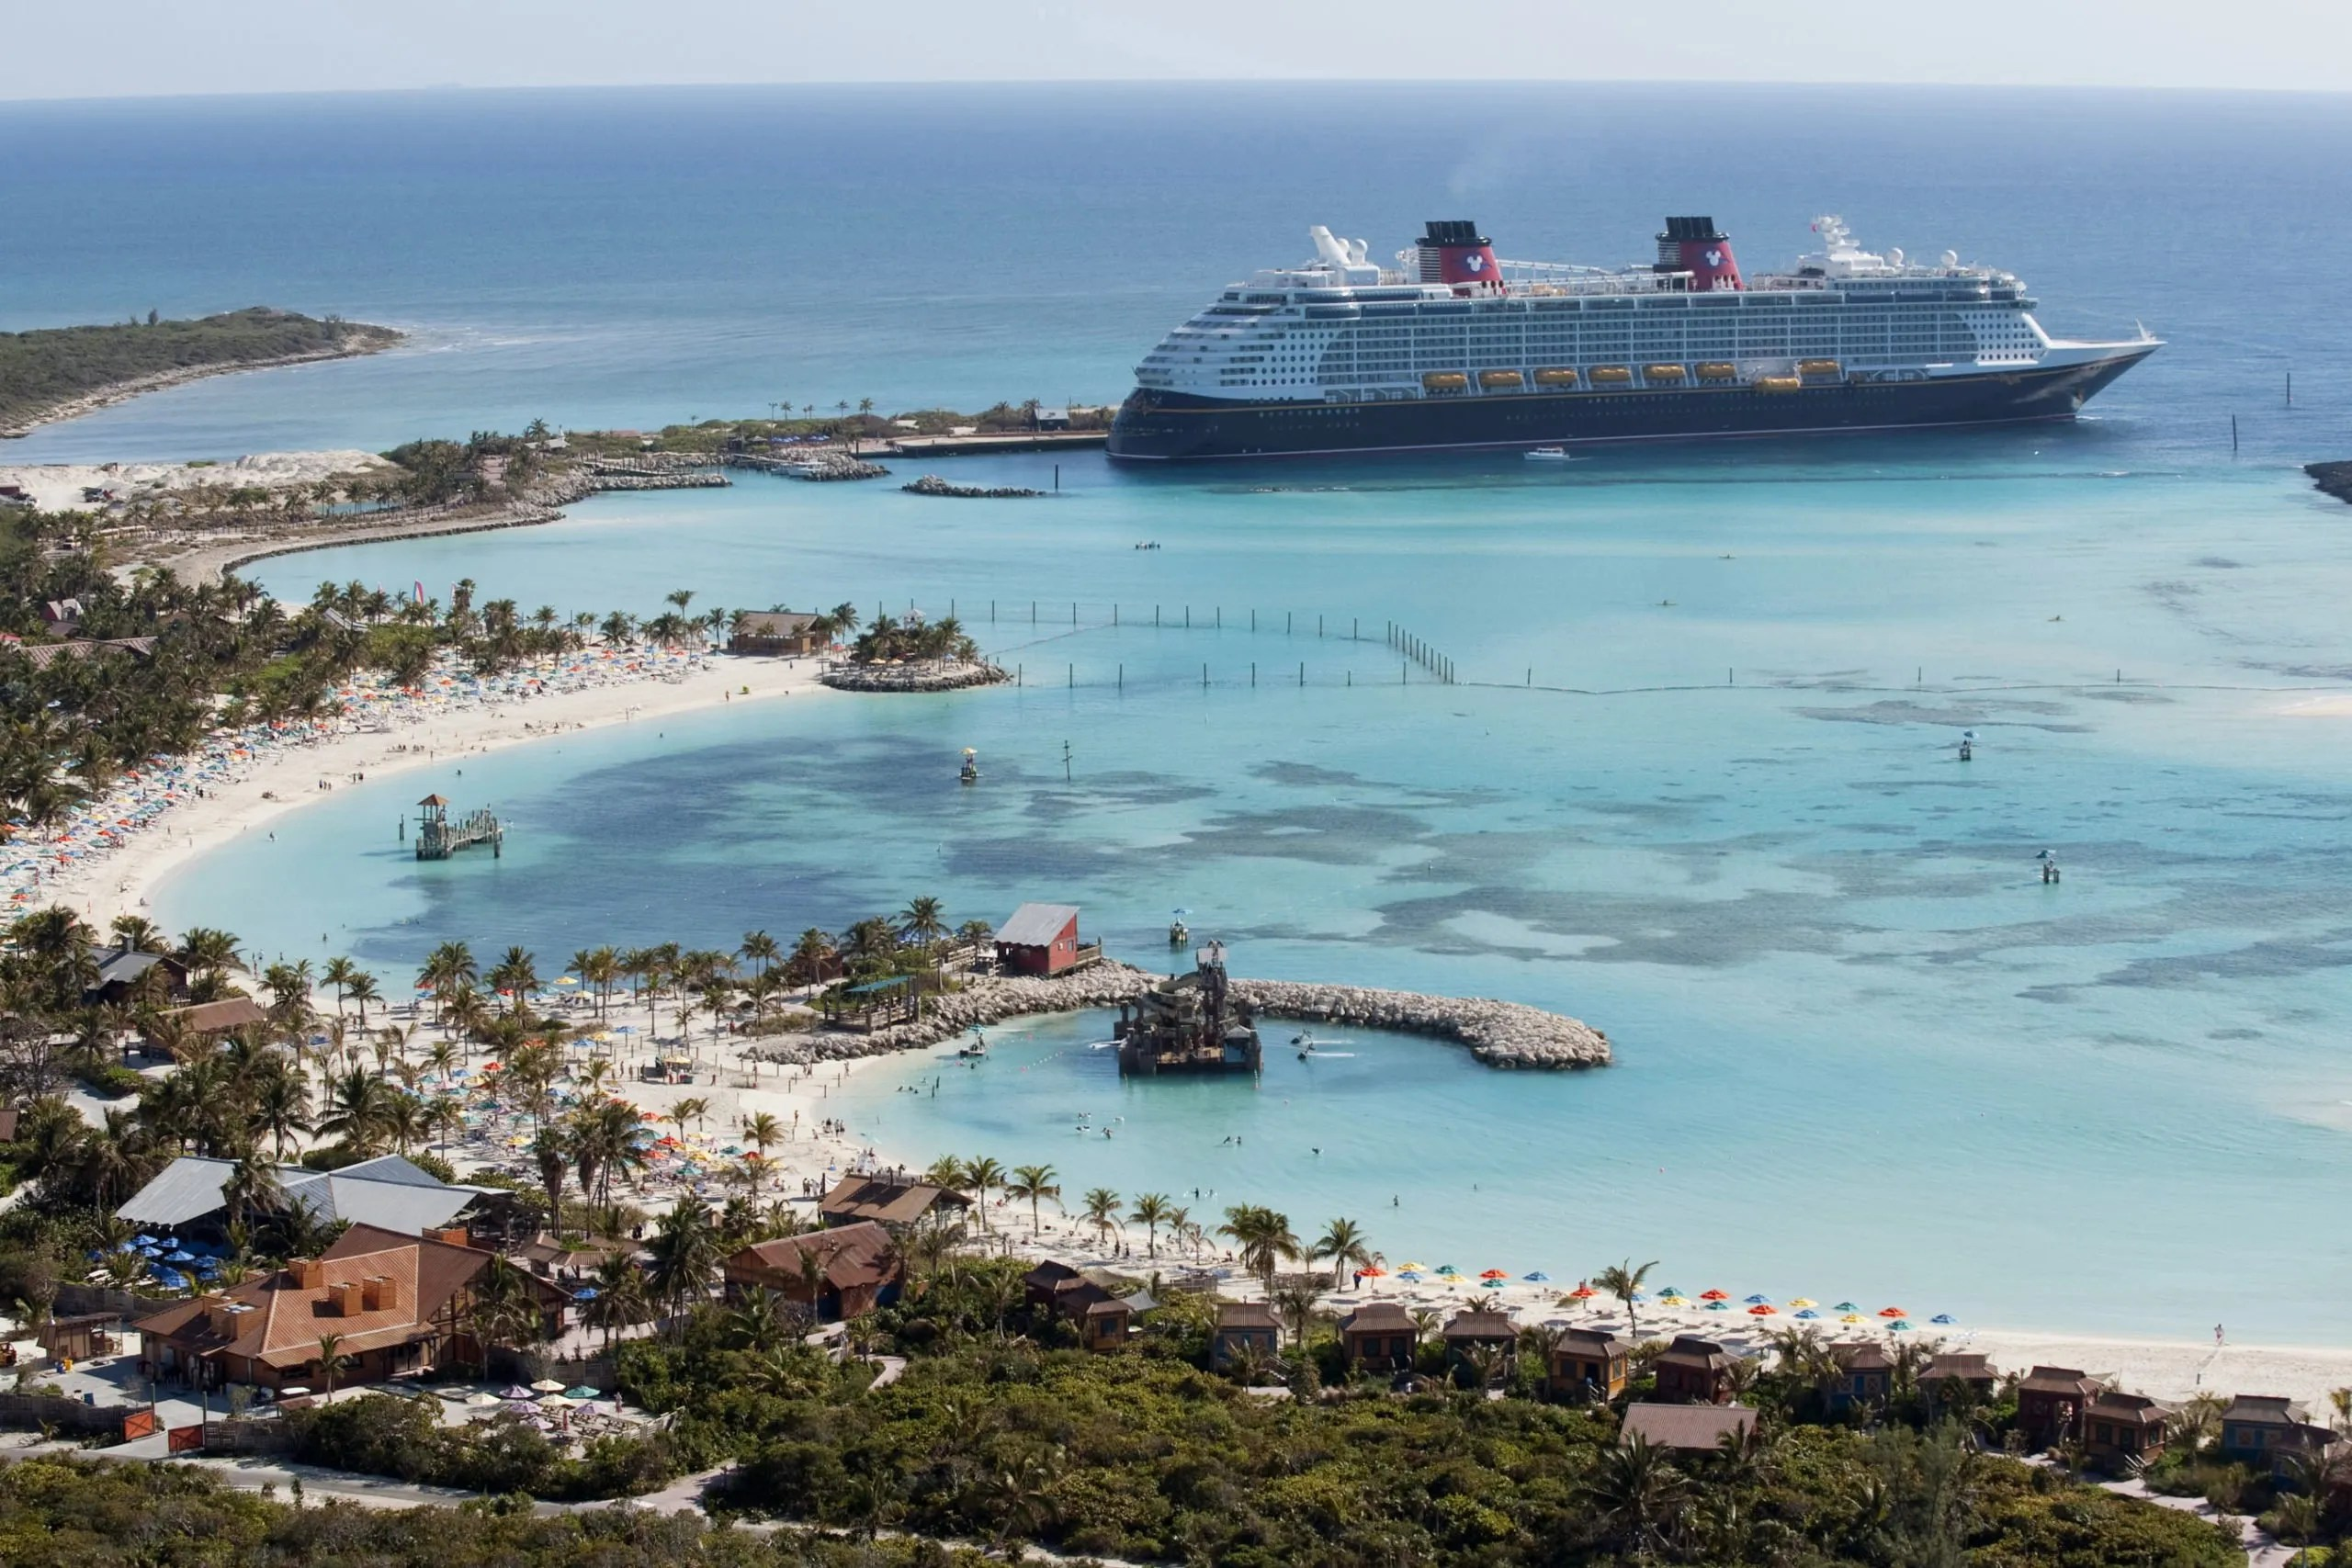 Disney Cruise Line Announces Itineraries and Home Ports for Fall 2021